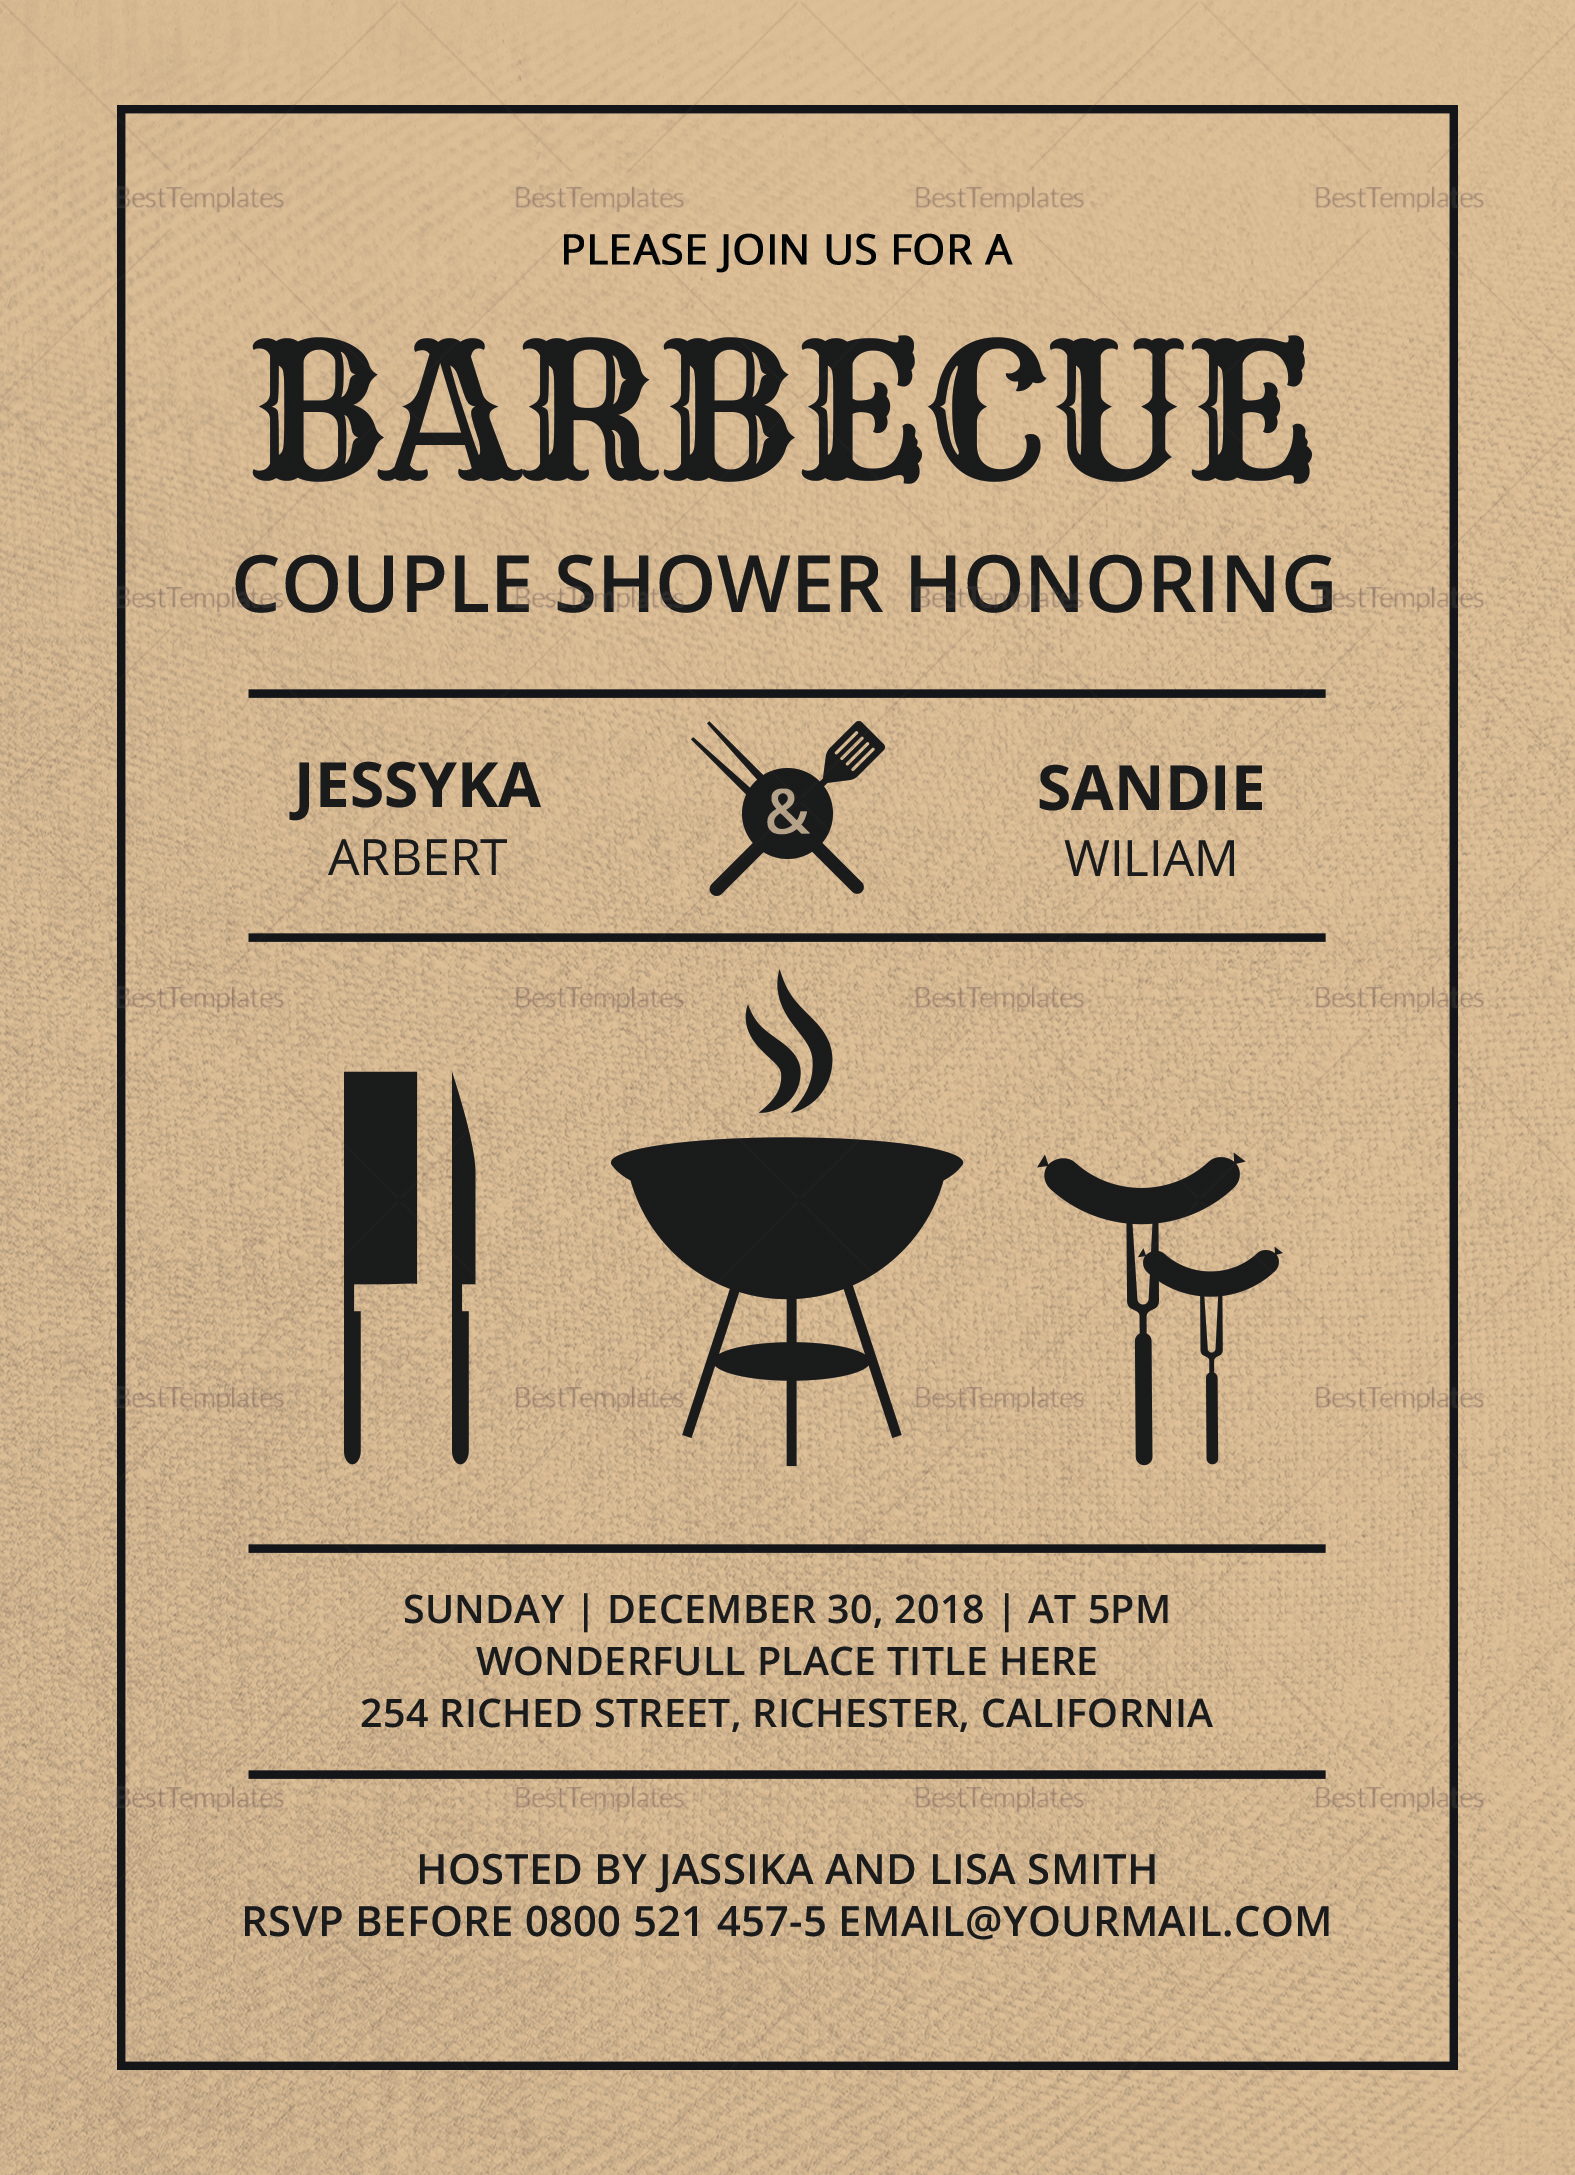 Couples Shower Invitation Templates Free Luxury Couple Shower Bbq Invitation Design Template In Word Psd